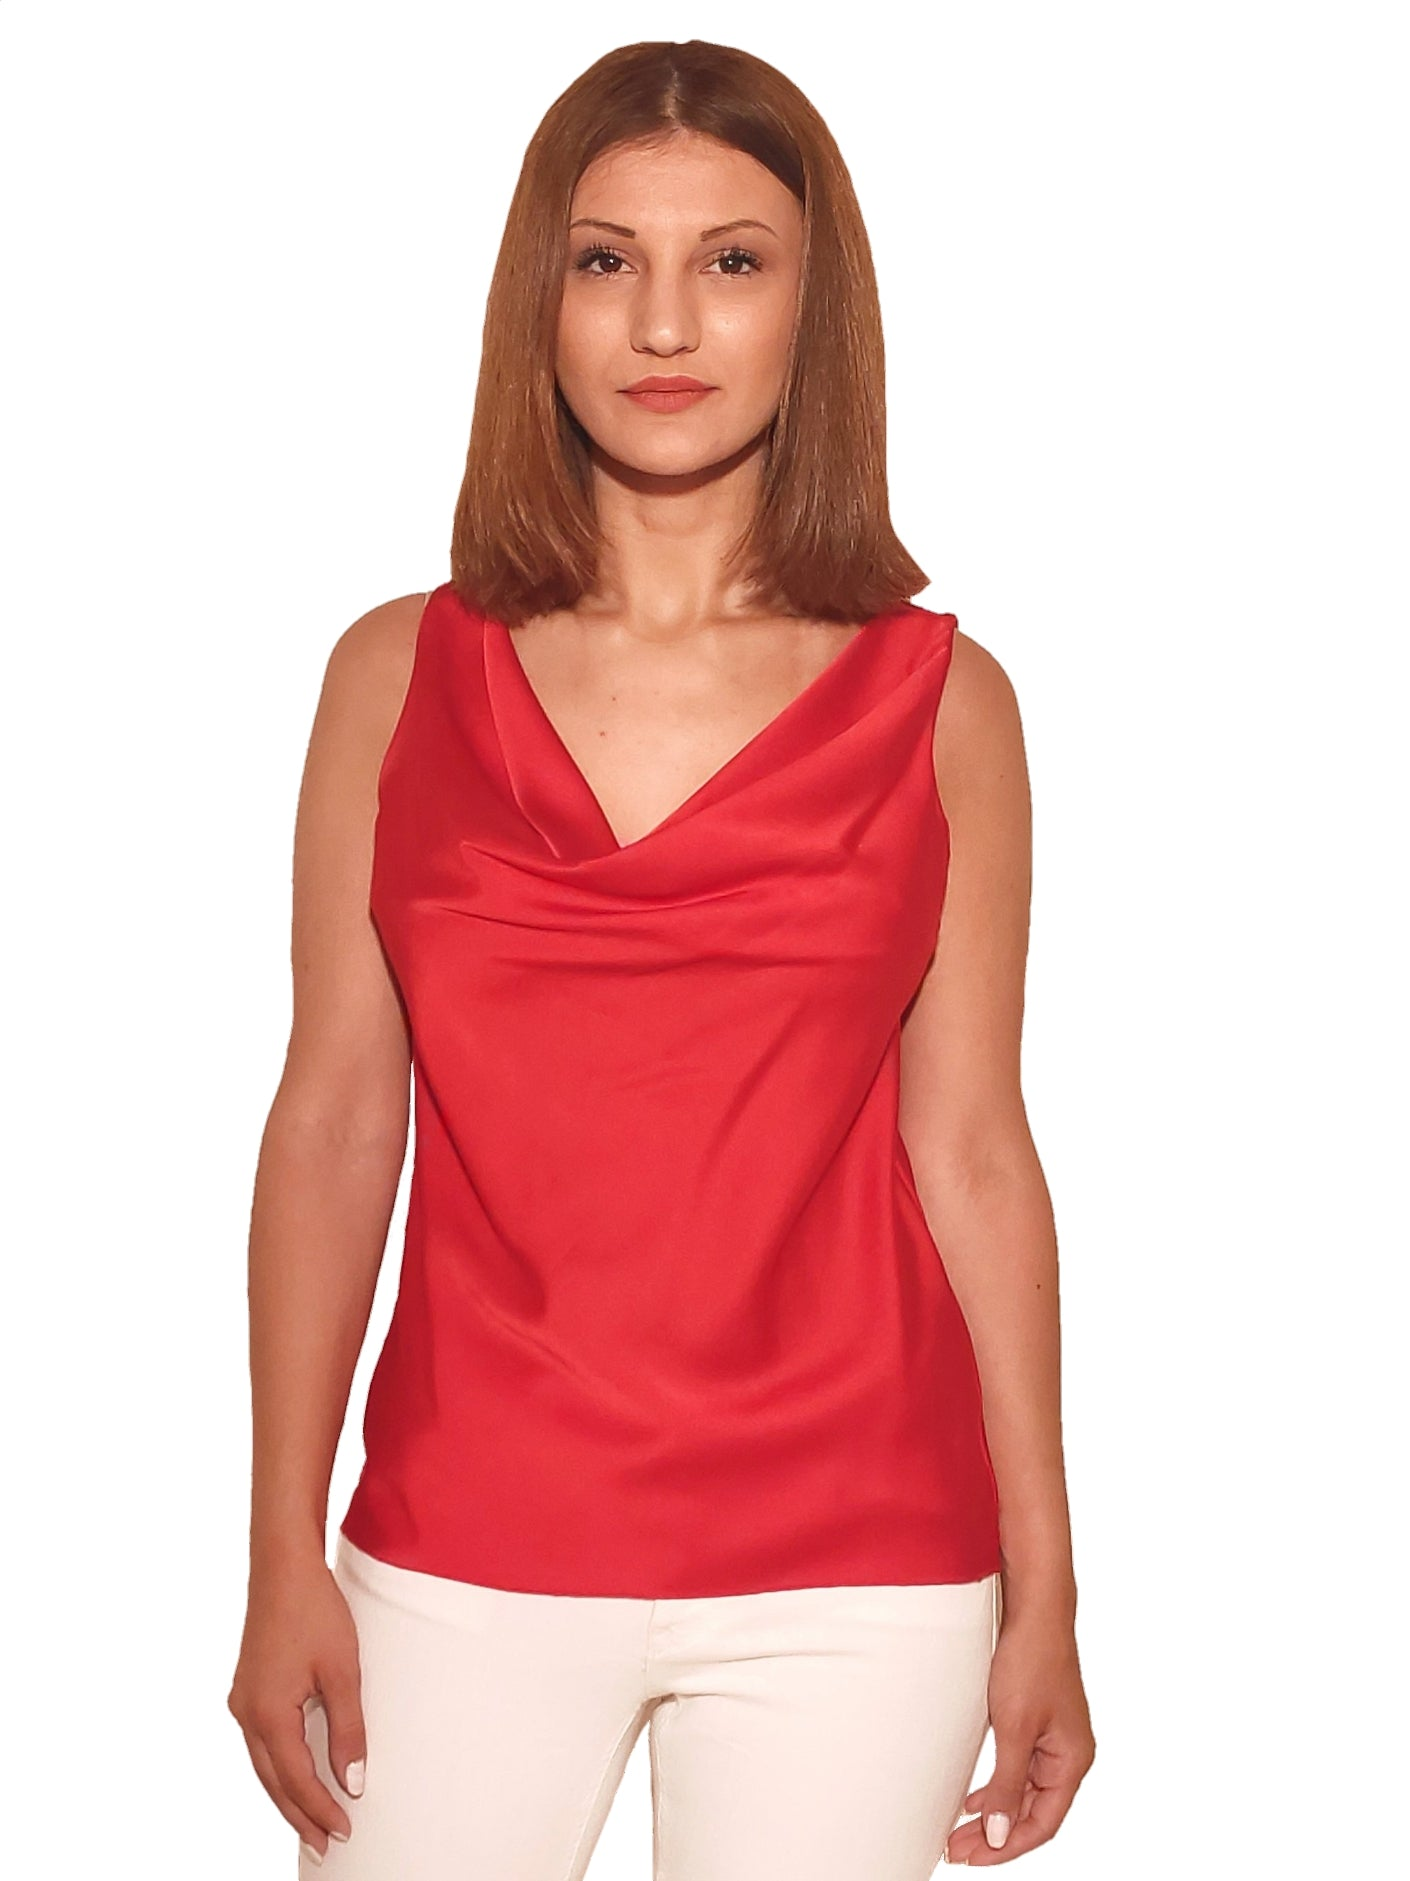 brunet-girl-wears-a-red-top-with-satin-touch-front